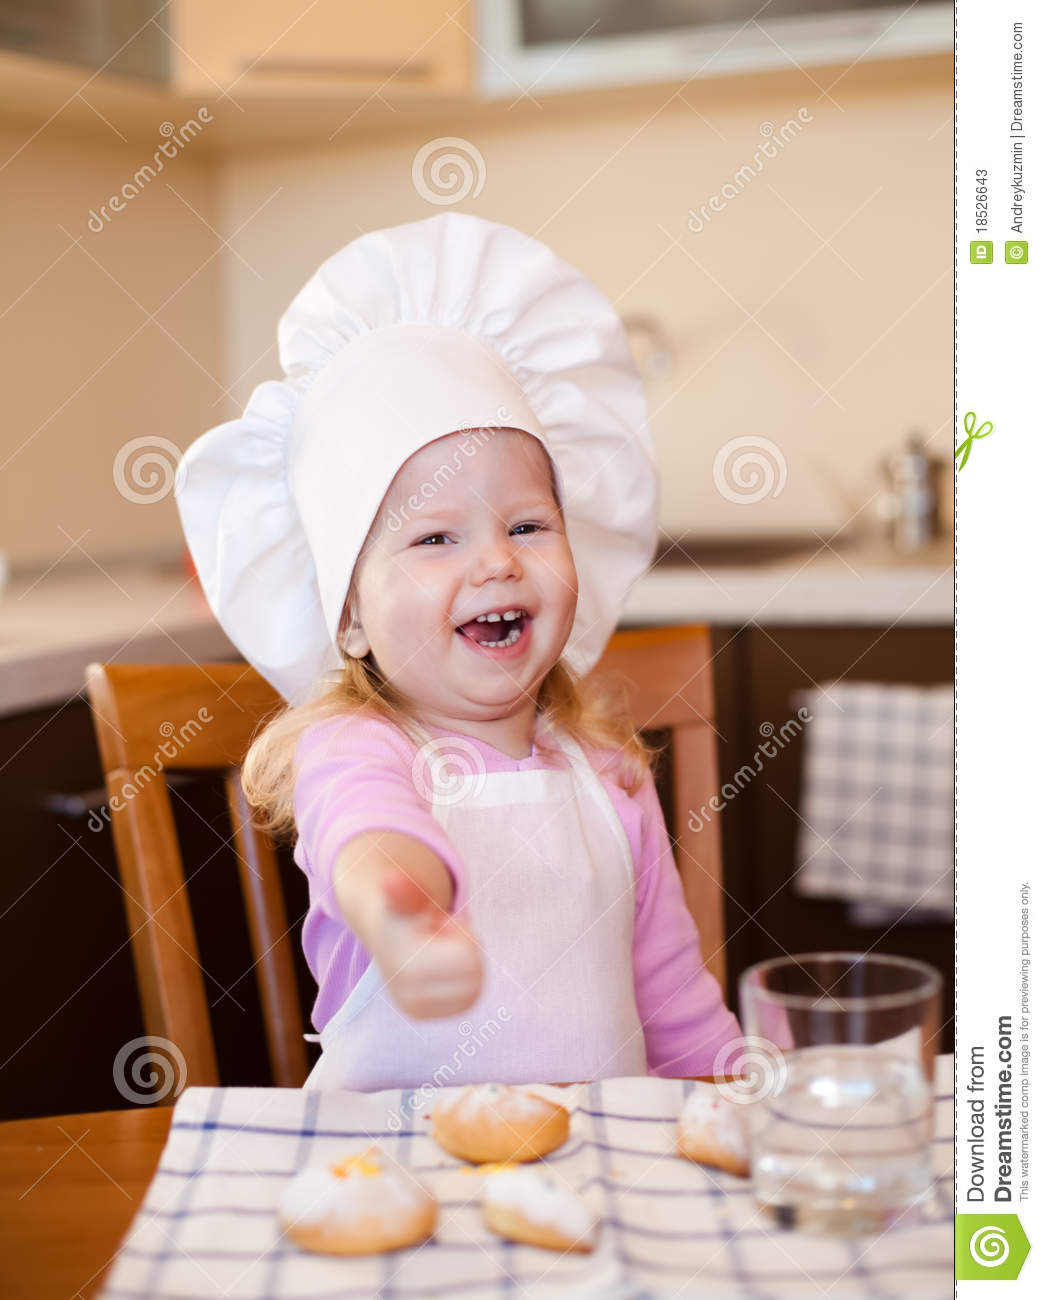 Happy Girl Kitchen: Happy Cook Girl Sitting At Kitchen With Cookies Stock